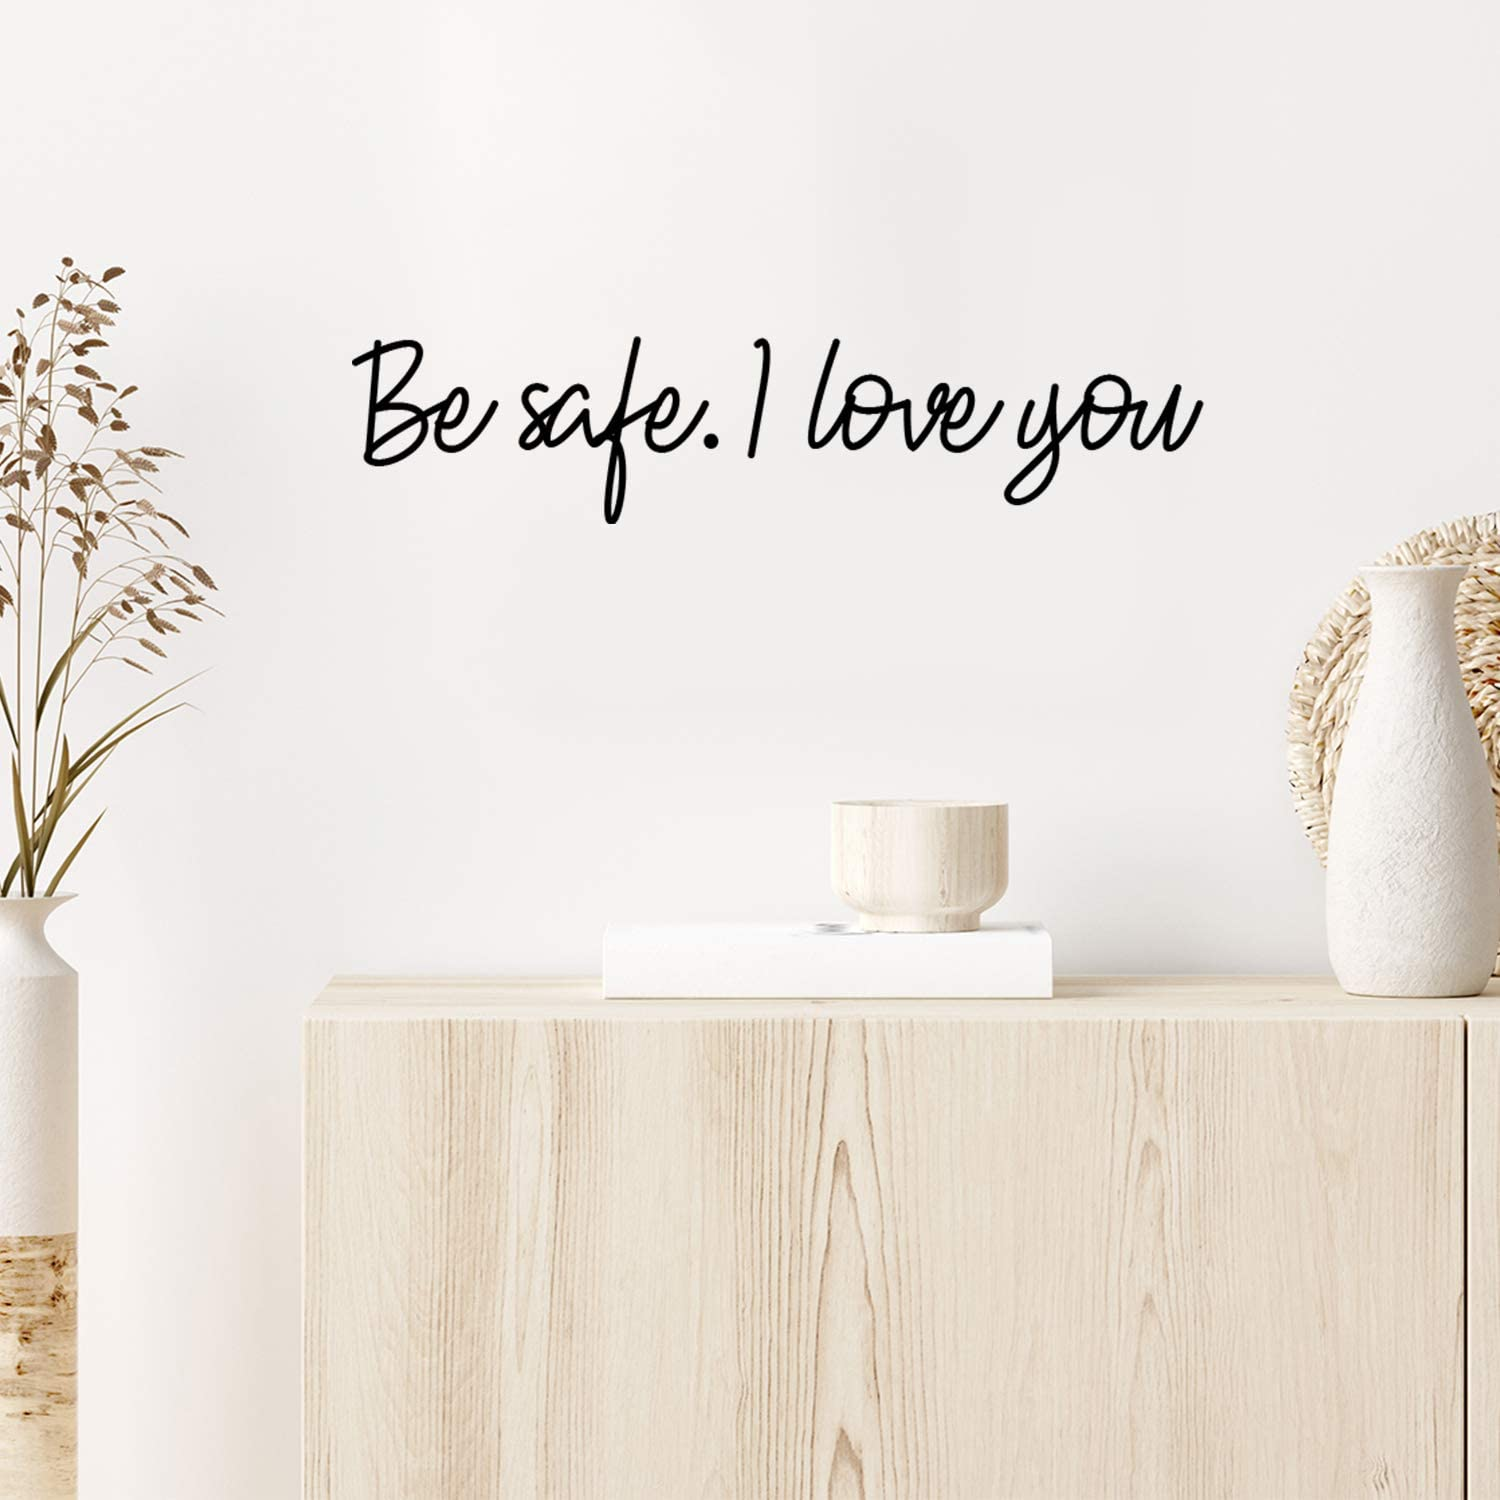 Vinyl Wall Art Decal - Be Safe. I Love You - 3.5